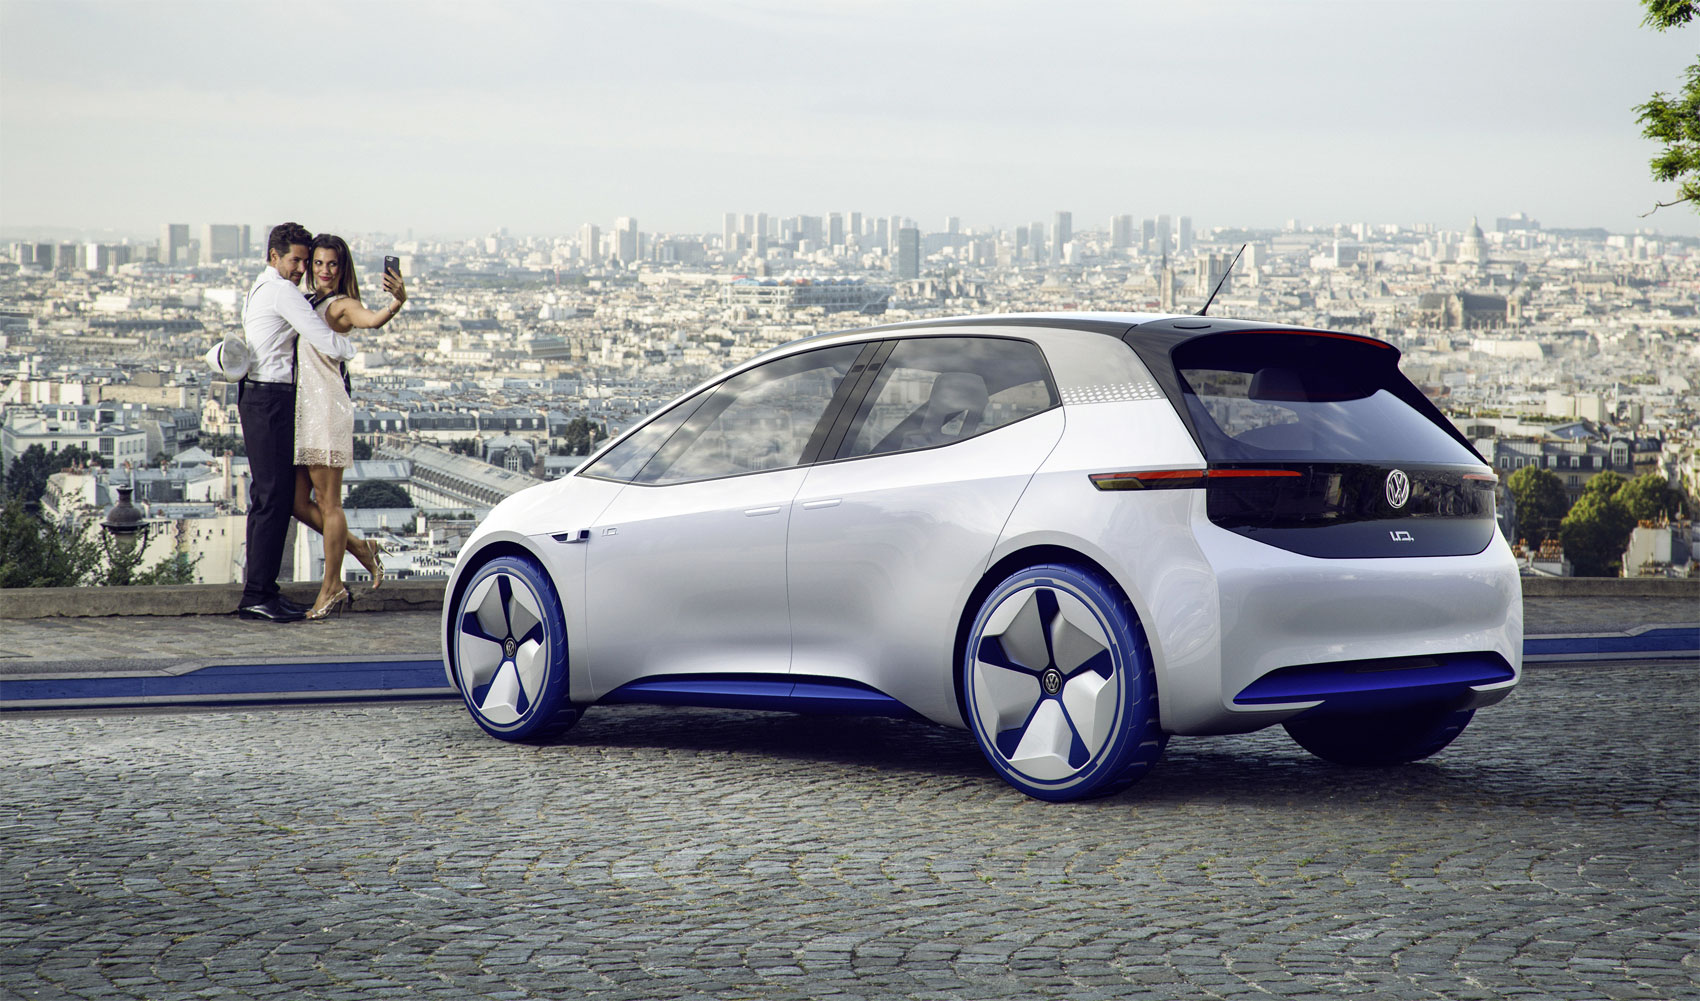 Volkswagen Puts Some Spark In The Electric Car Sector With Its I.D Showcar